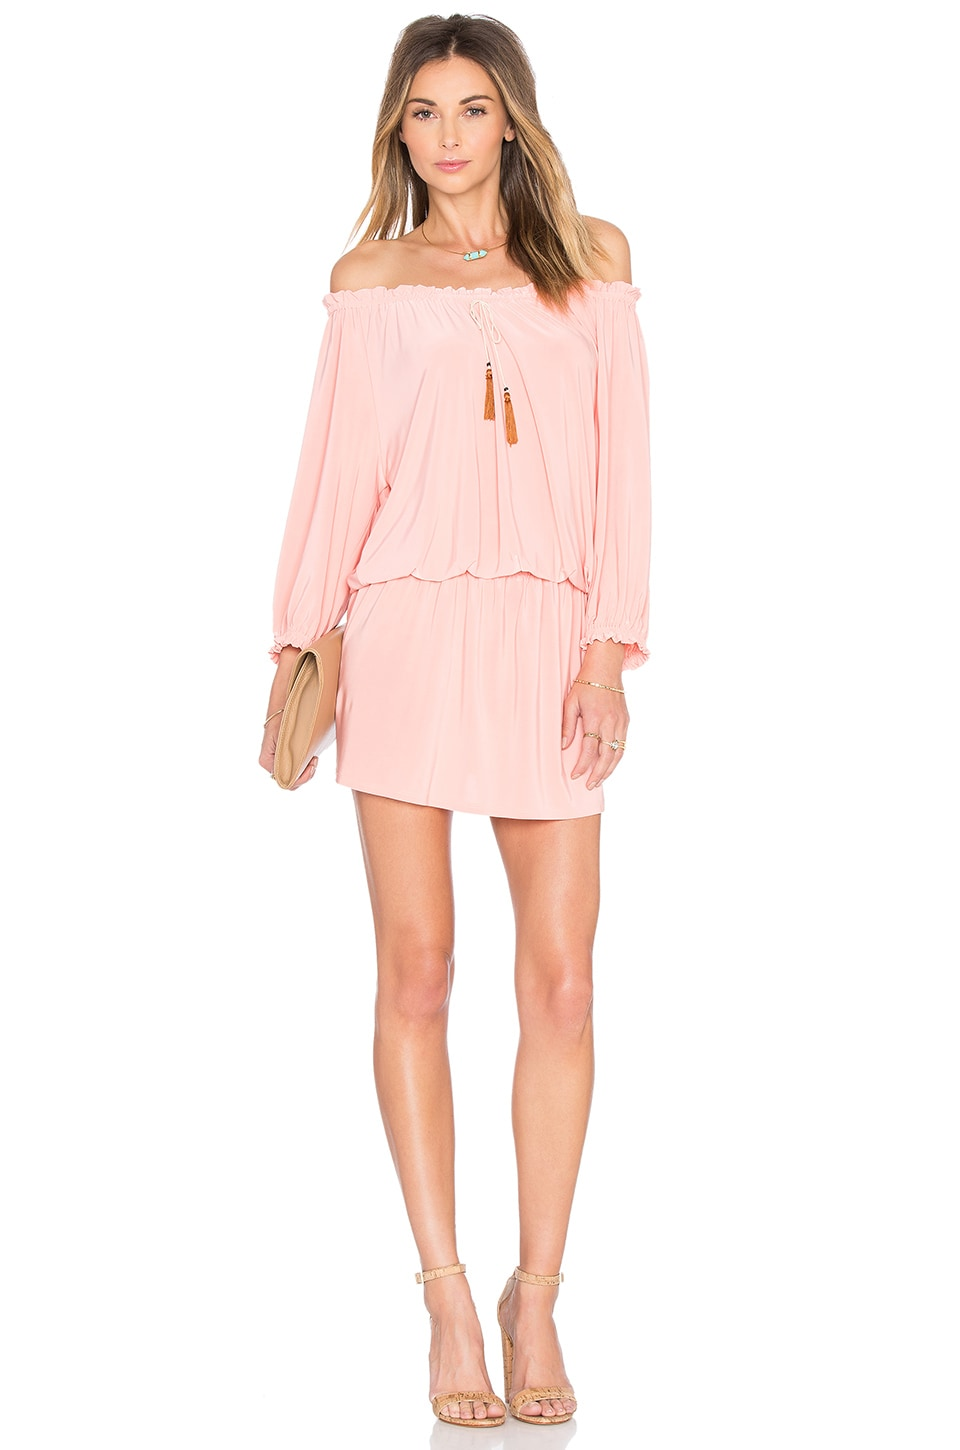 MISA Los Angeles Poppy Off the Shoulder Dress in Blush